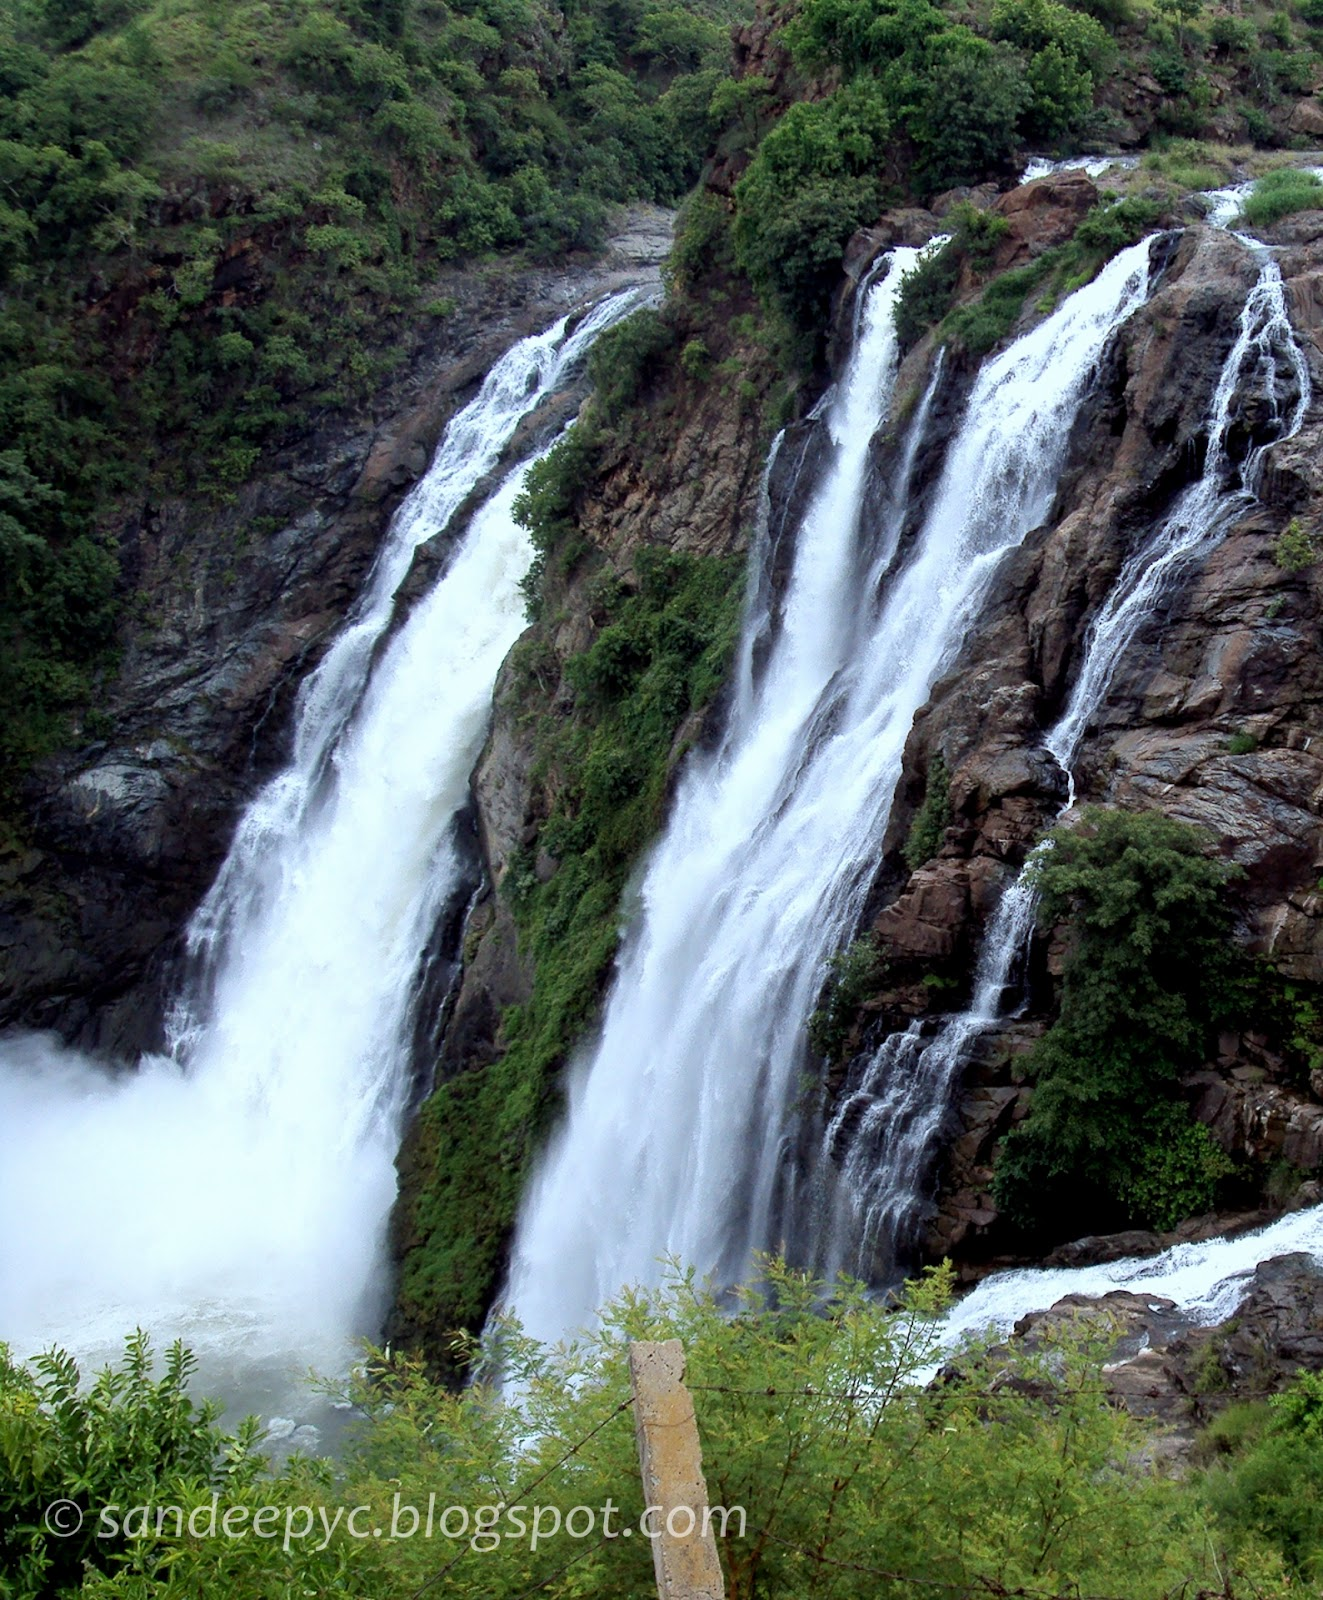 The right section of Gaganachukki falls